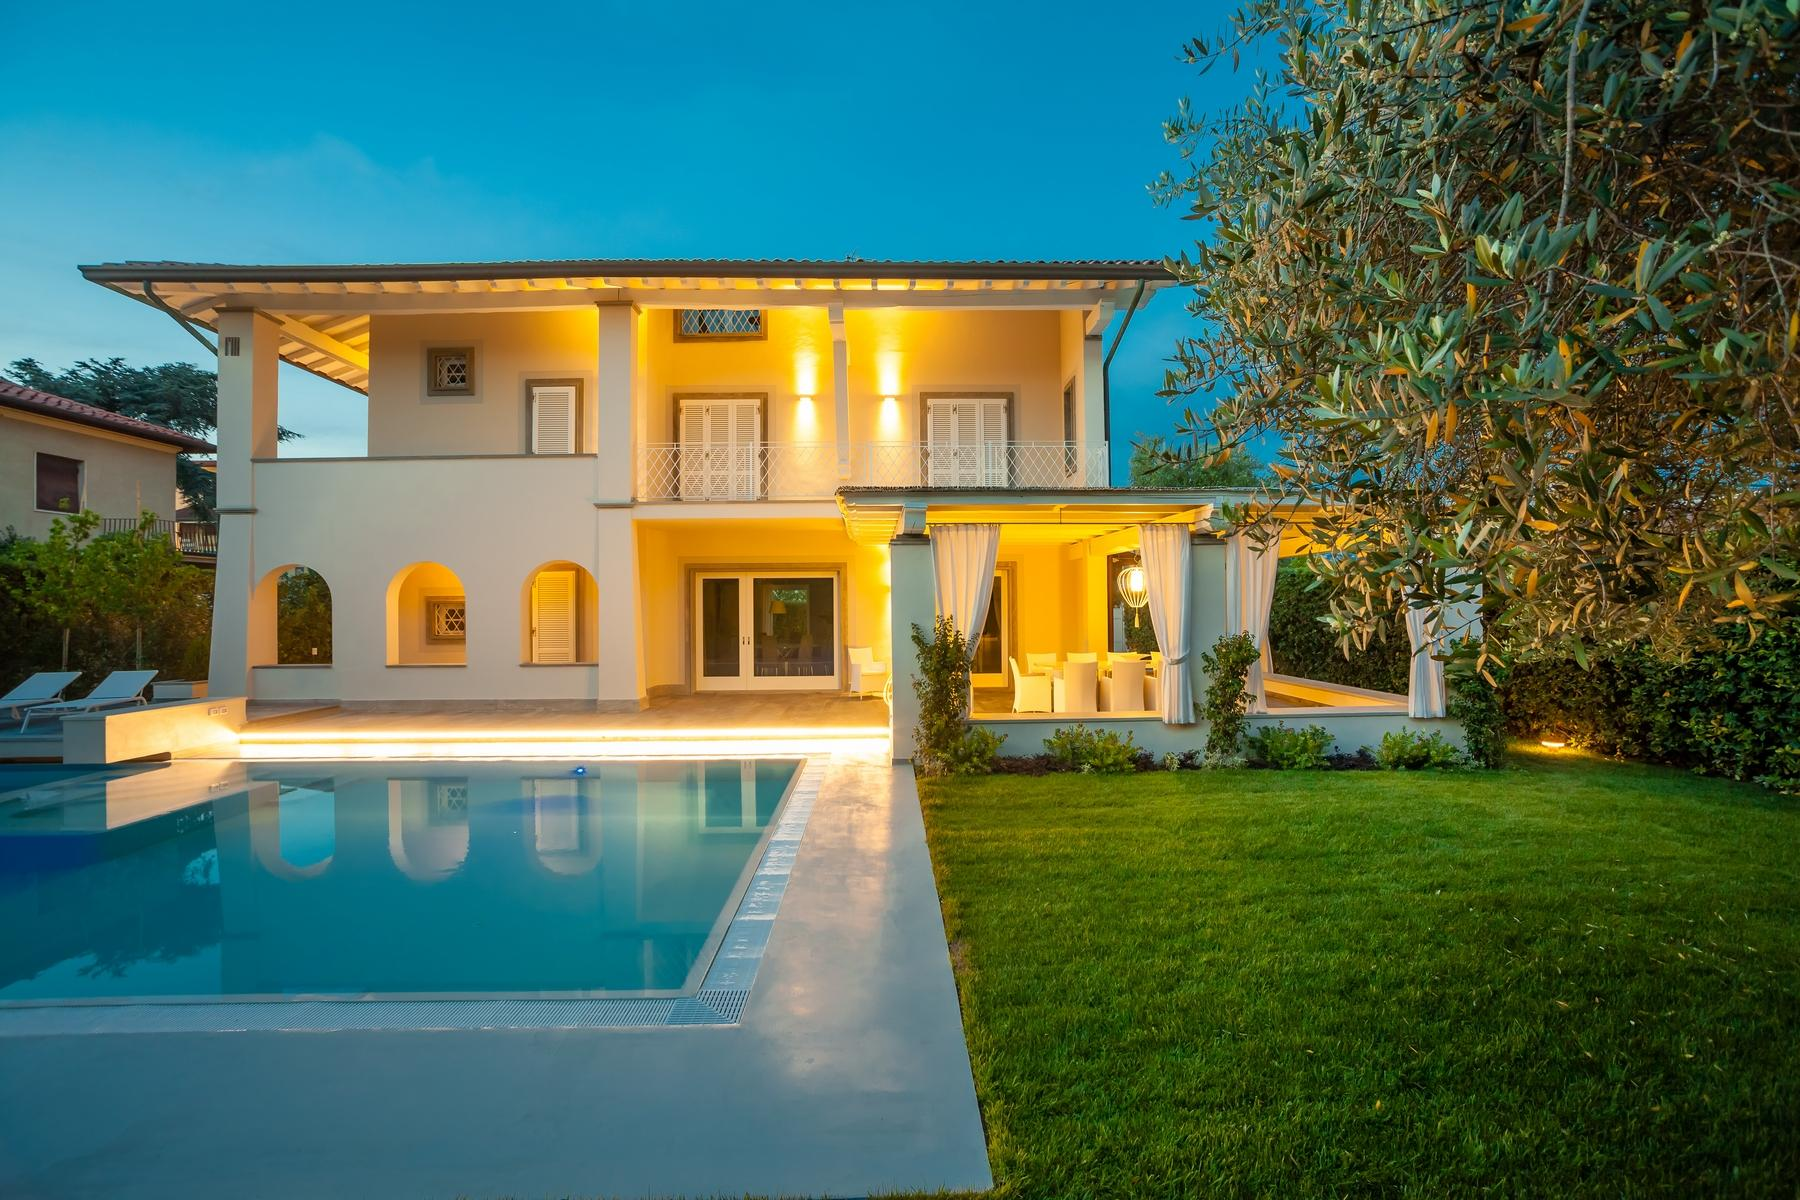 Splendid villa with swimming pool in Forte dei Marmi - 20